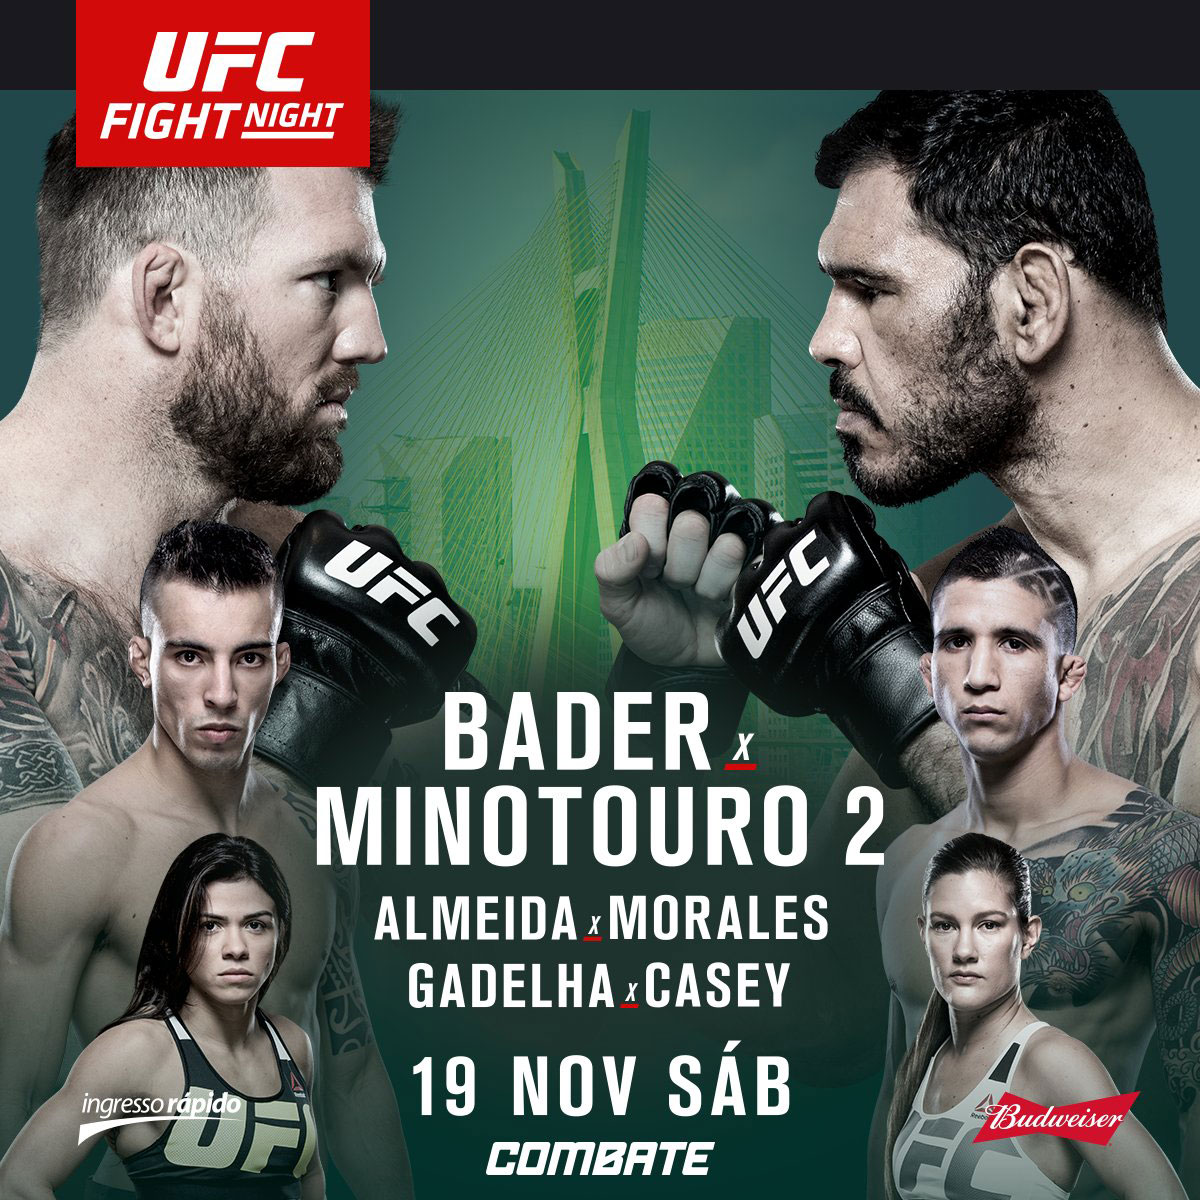 Poster/affiche UFC Fight Night 100 - Sao Paulo